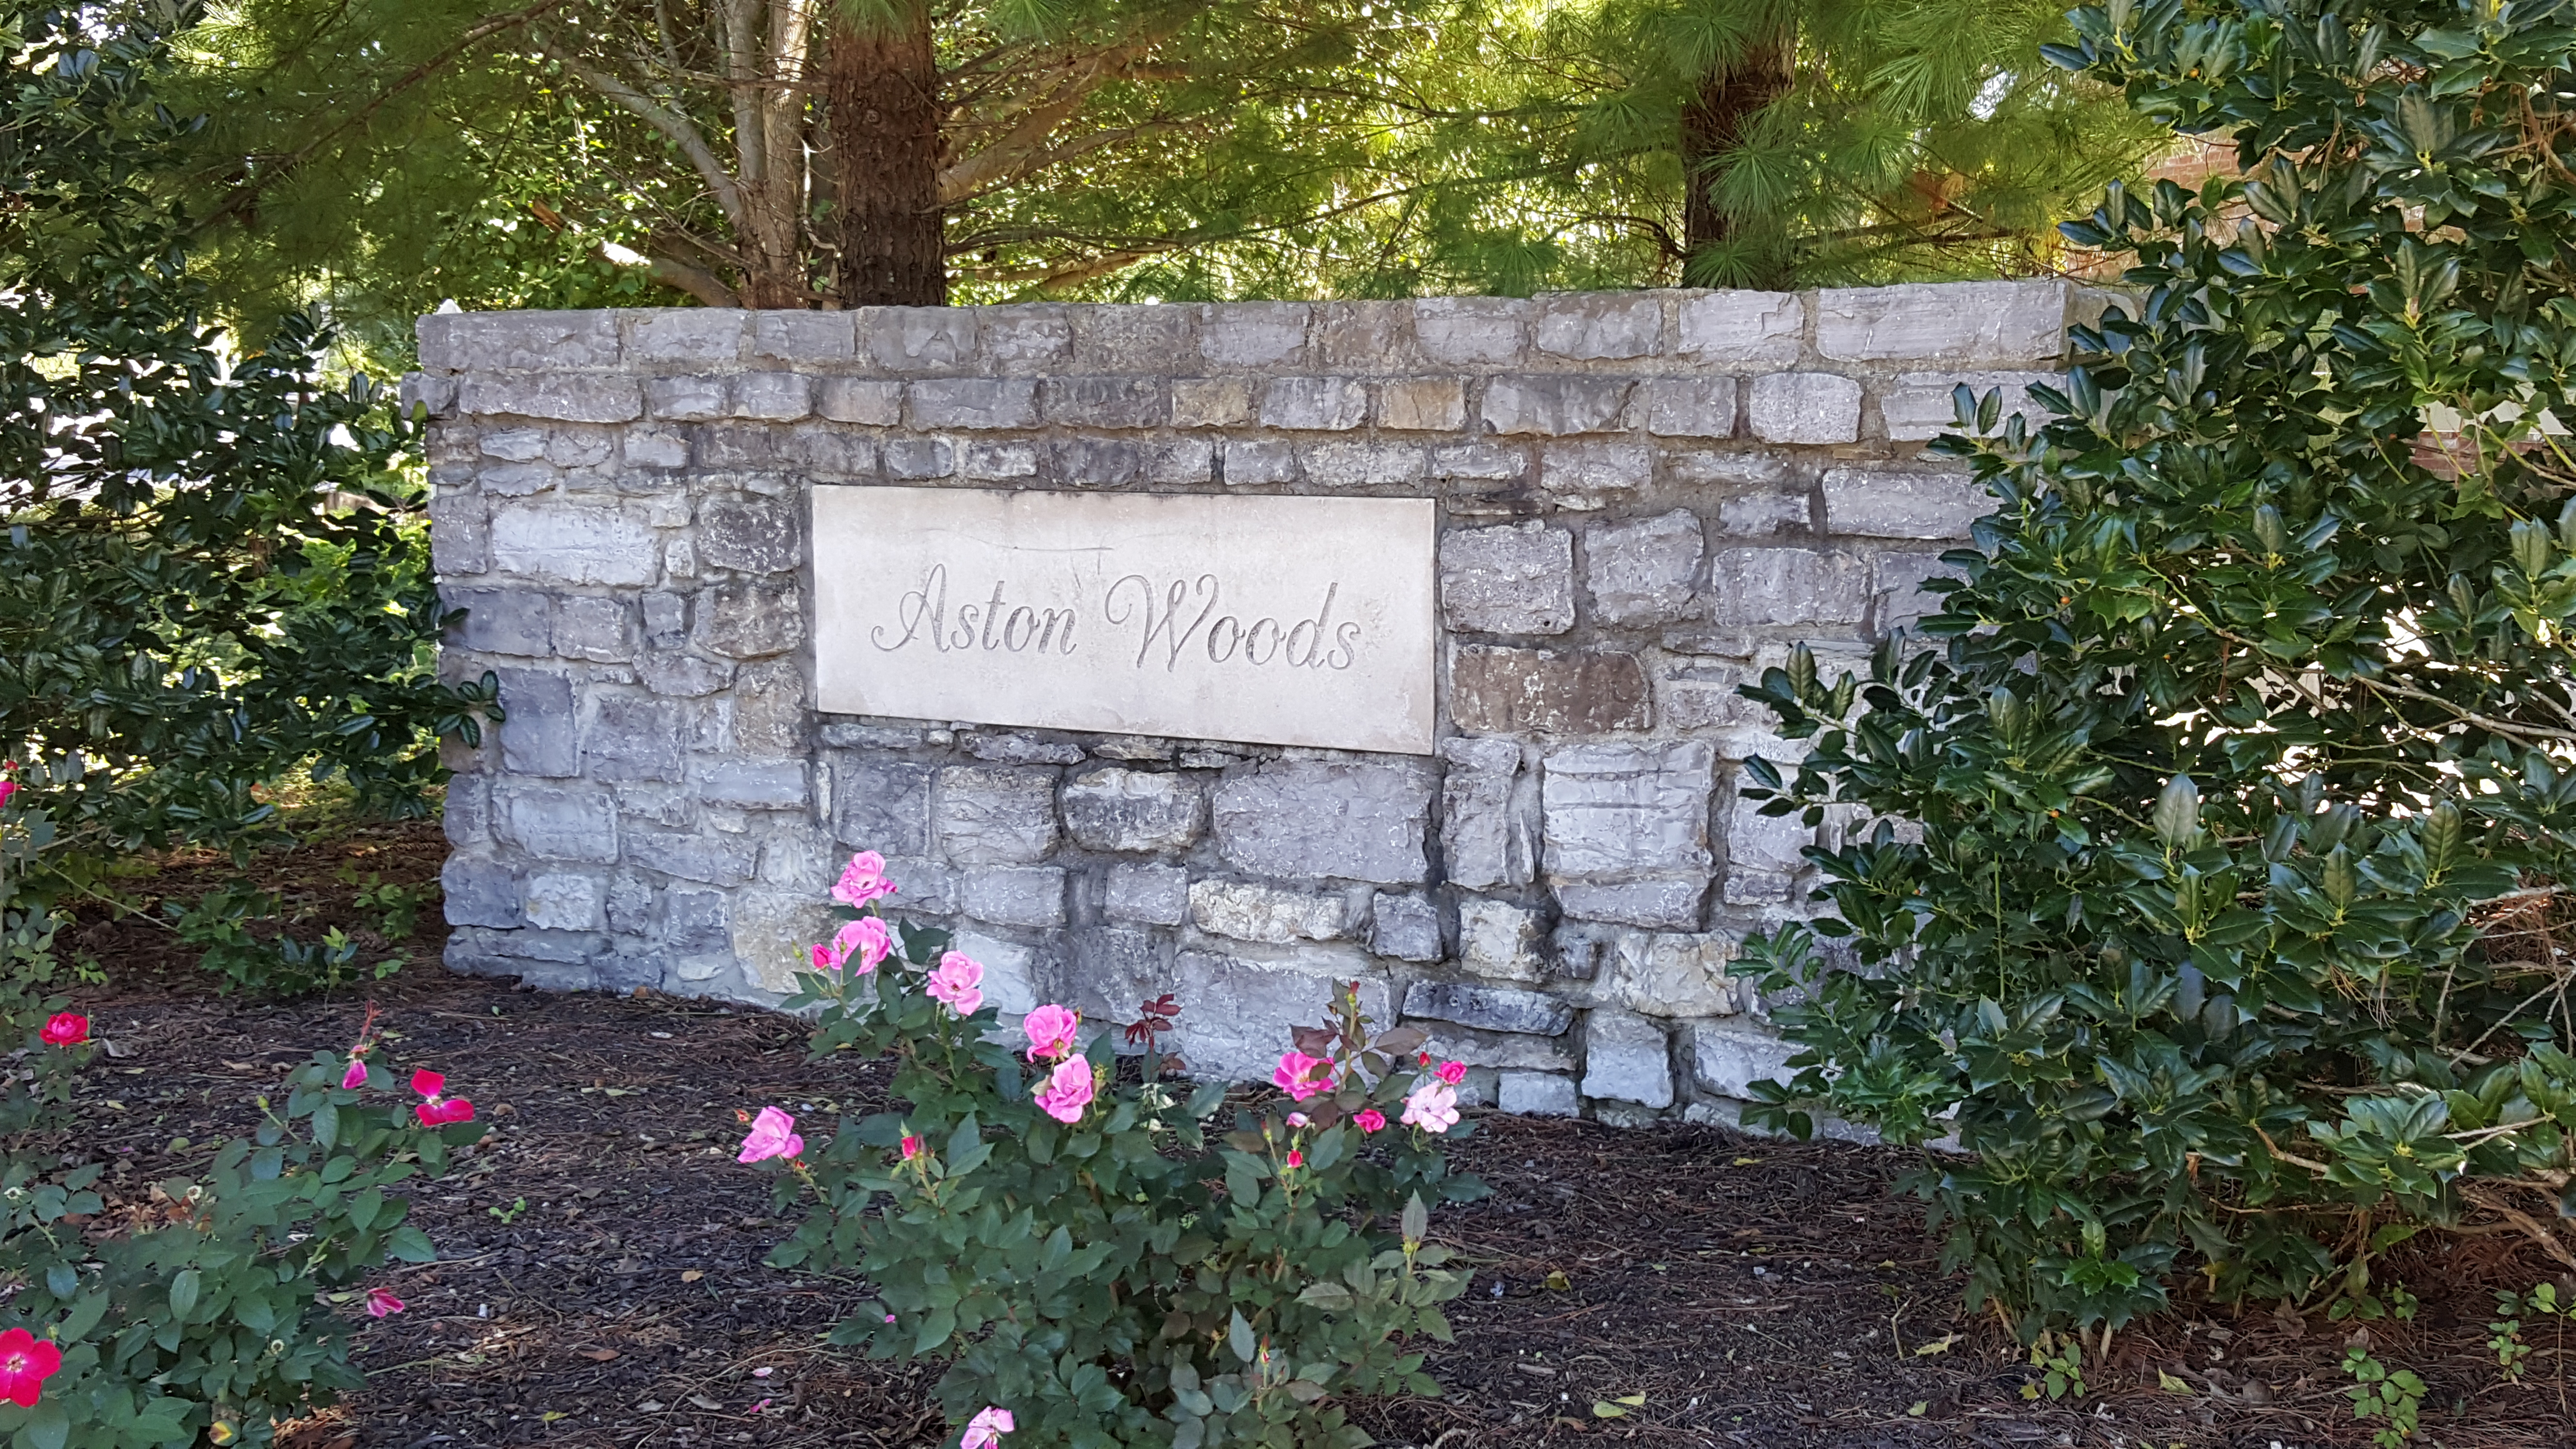 Aston Woods subdivision in Thompson's Station homes for sale